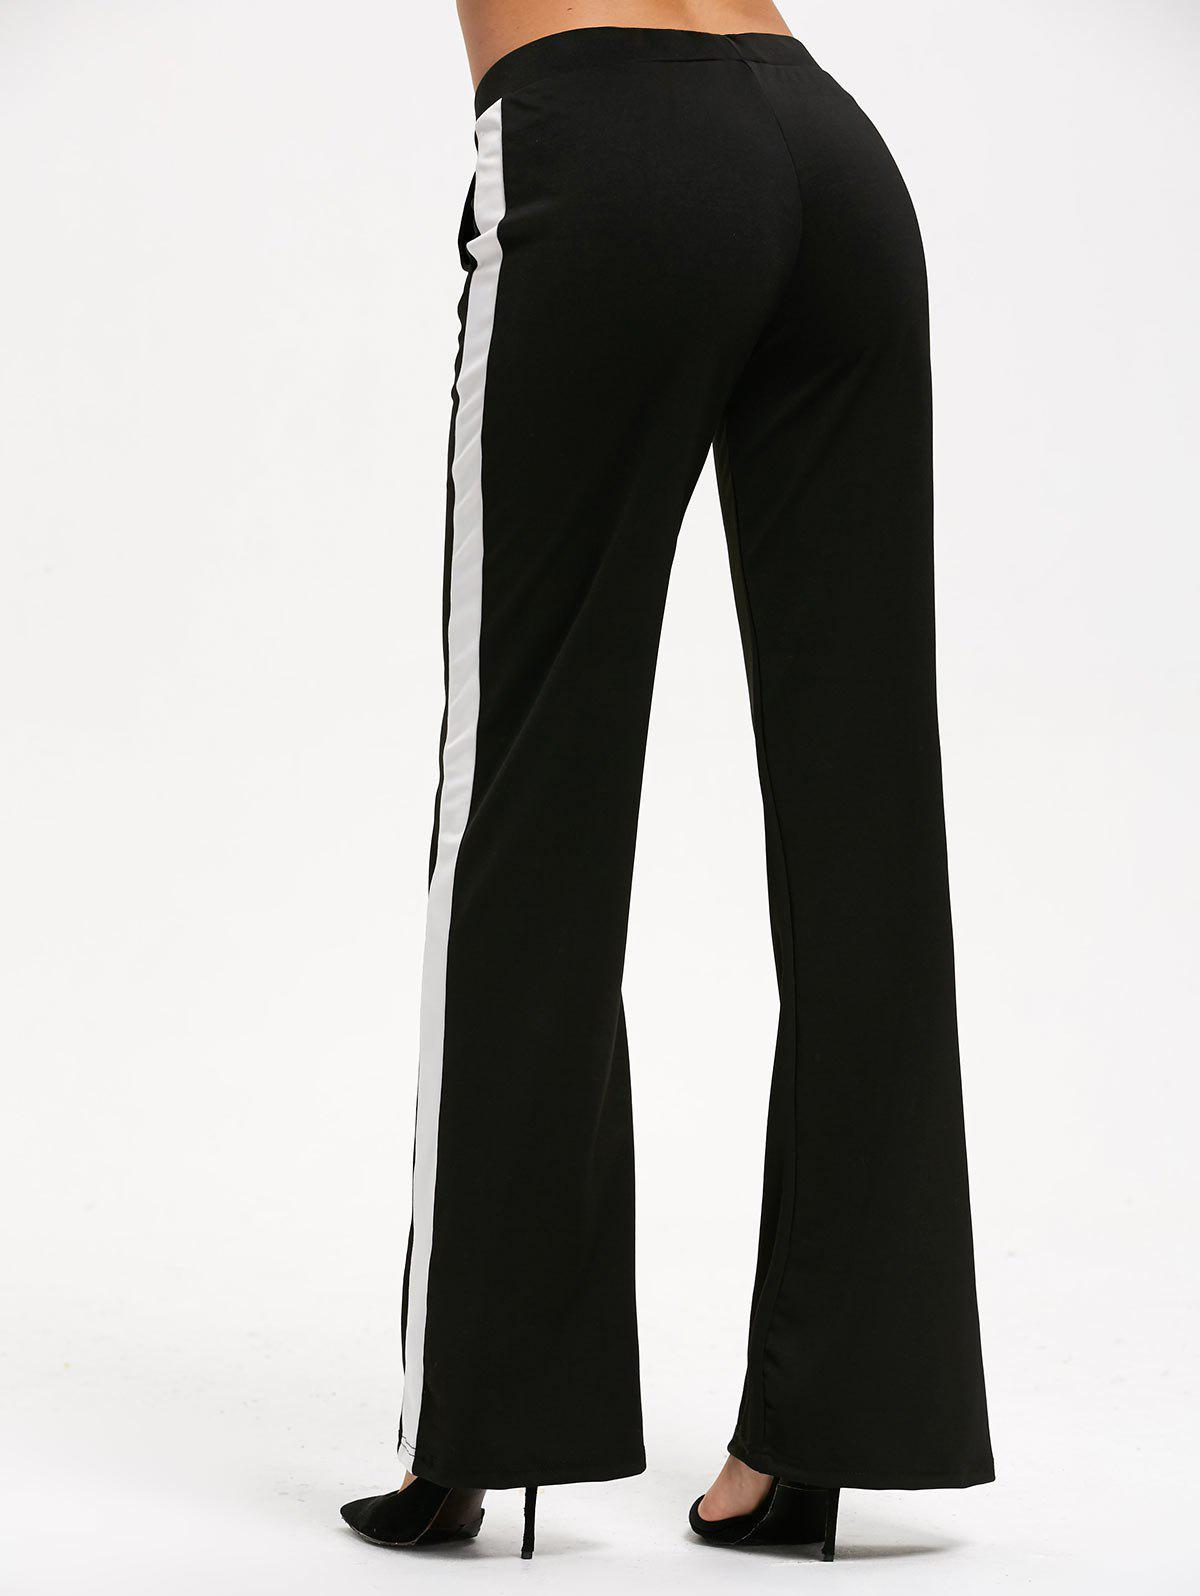 Casual Color Trim Straight Pants with Pocket - Noir XL